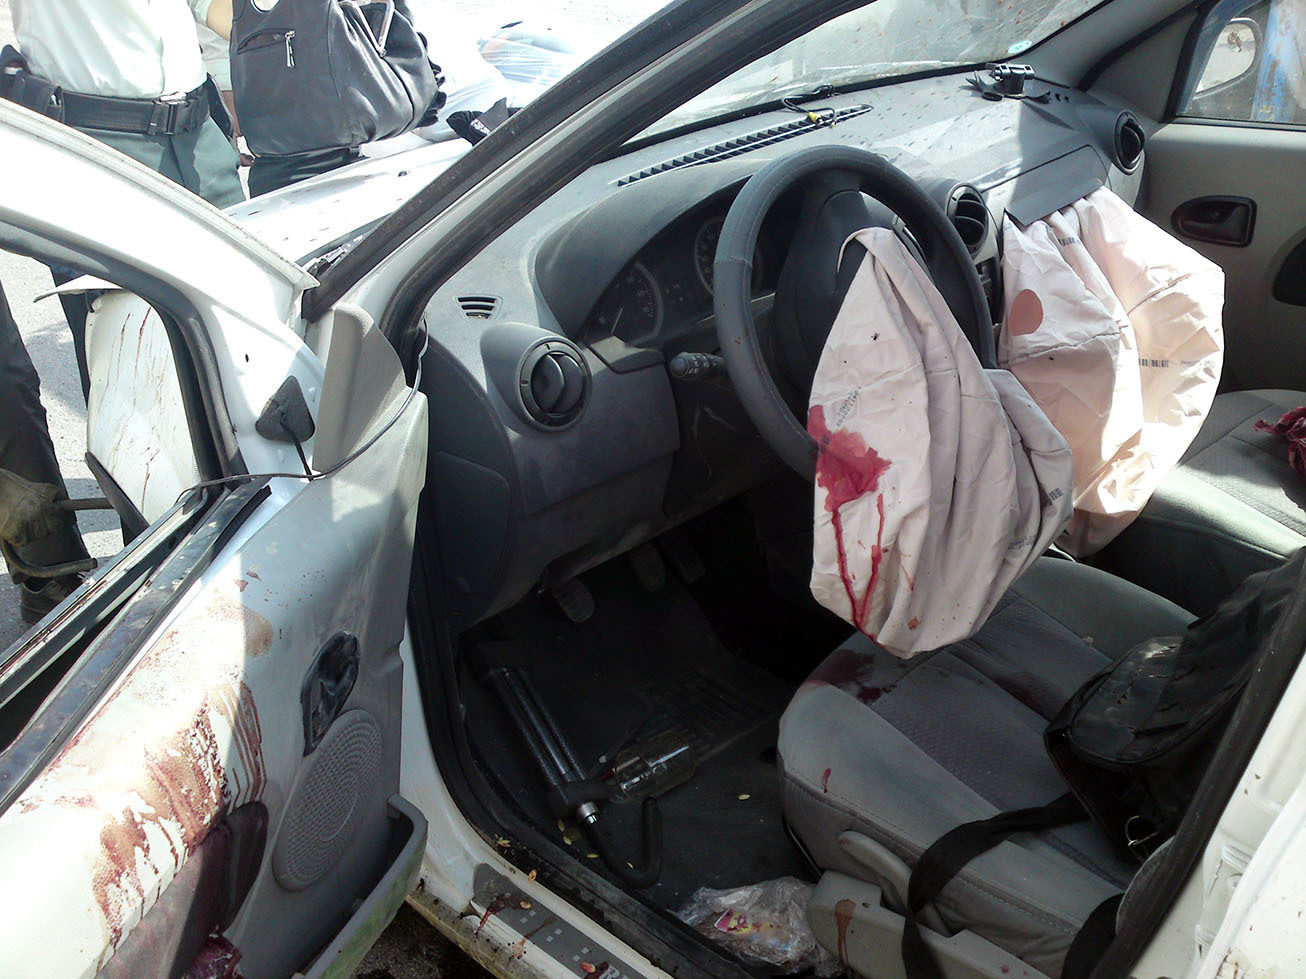 Airbag Bloody Mohsan Dabiri E Vaziri Wikimedia on 2009 Dodge Dakota Recall